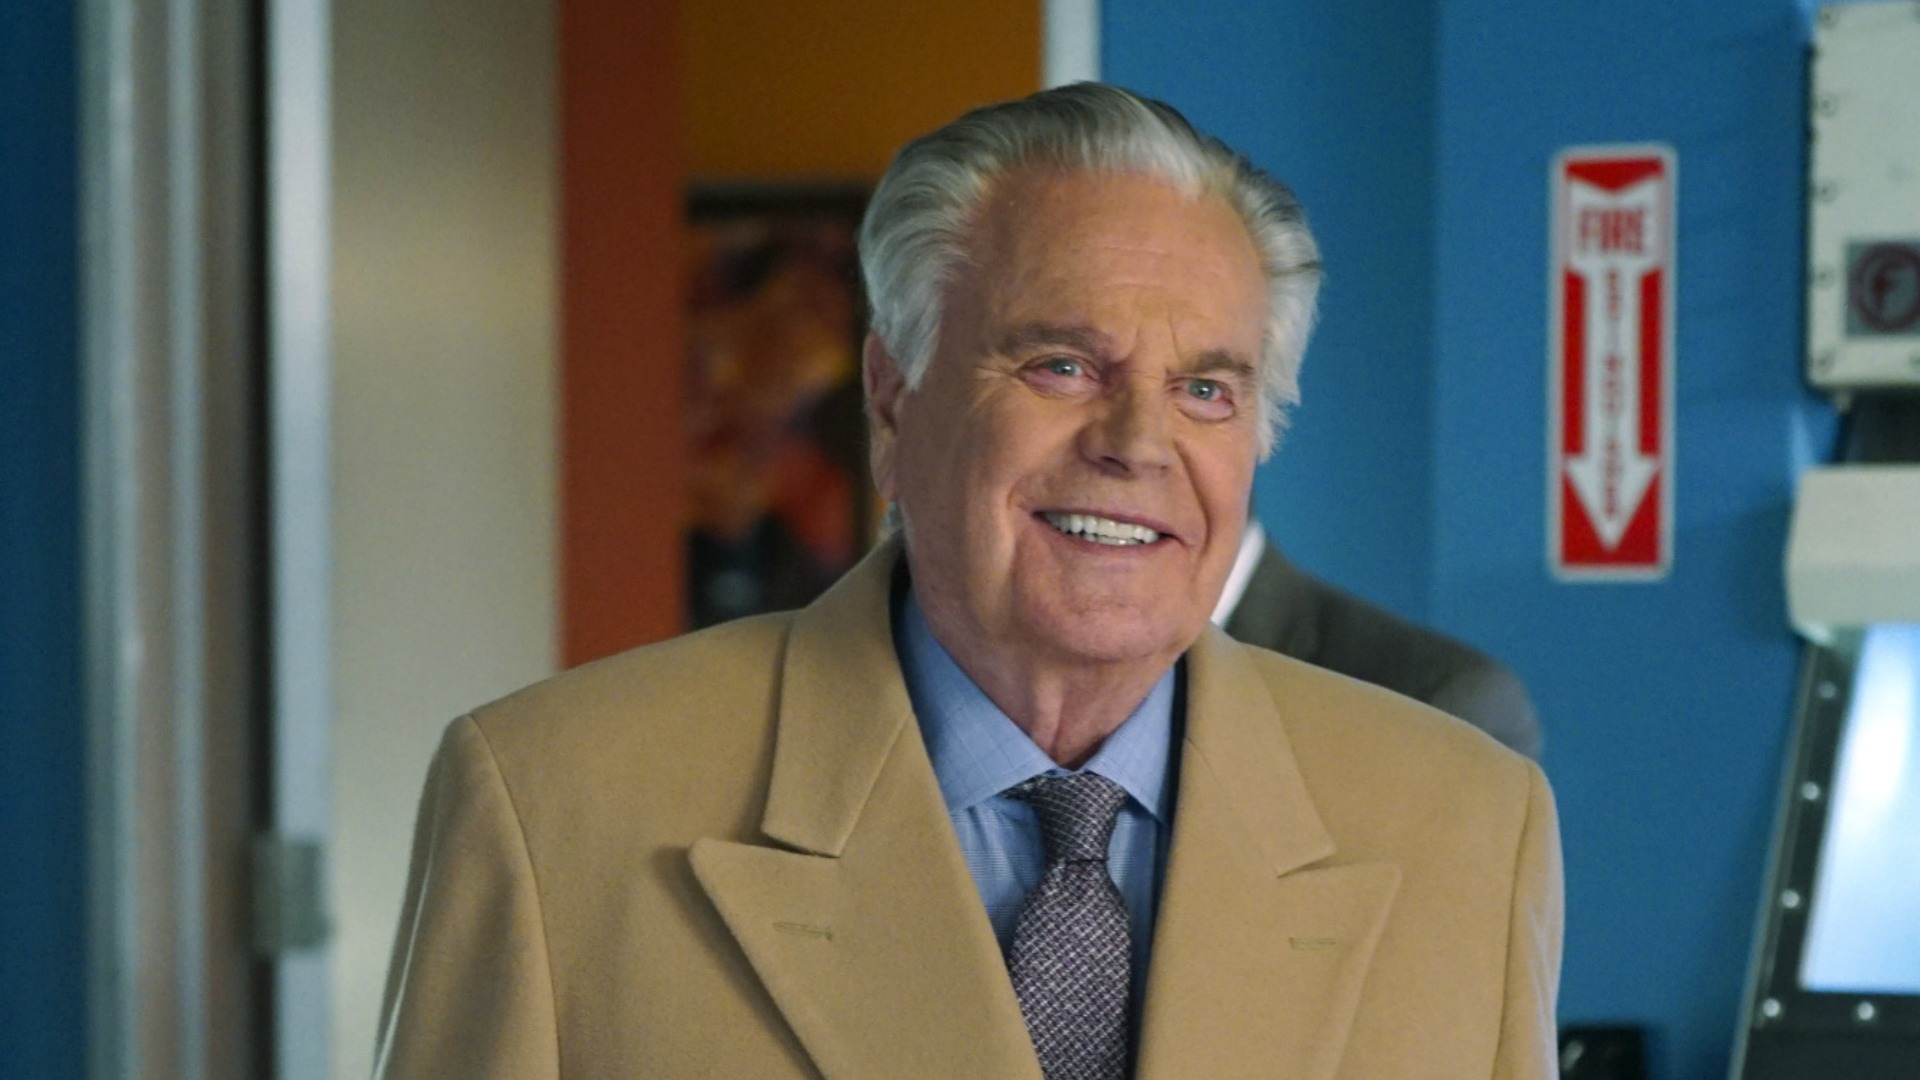 DiNozzo Sr.'s continued friendship